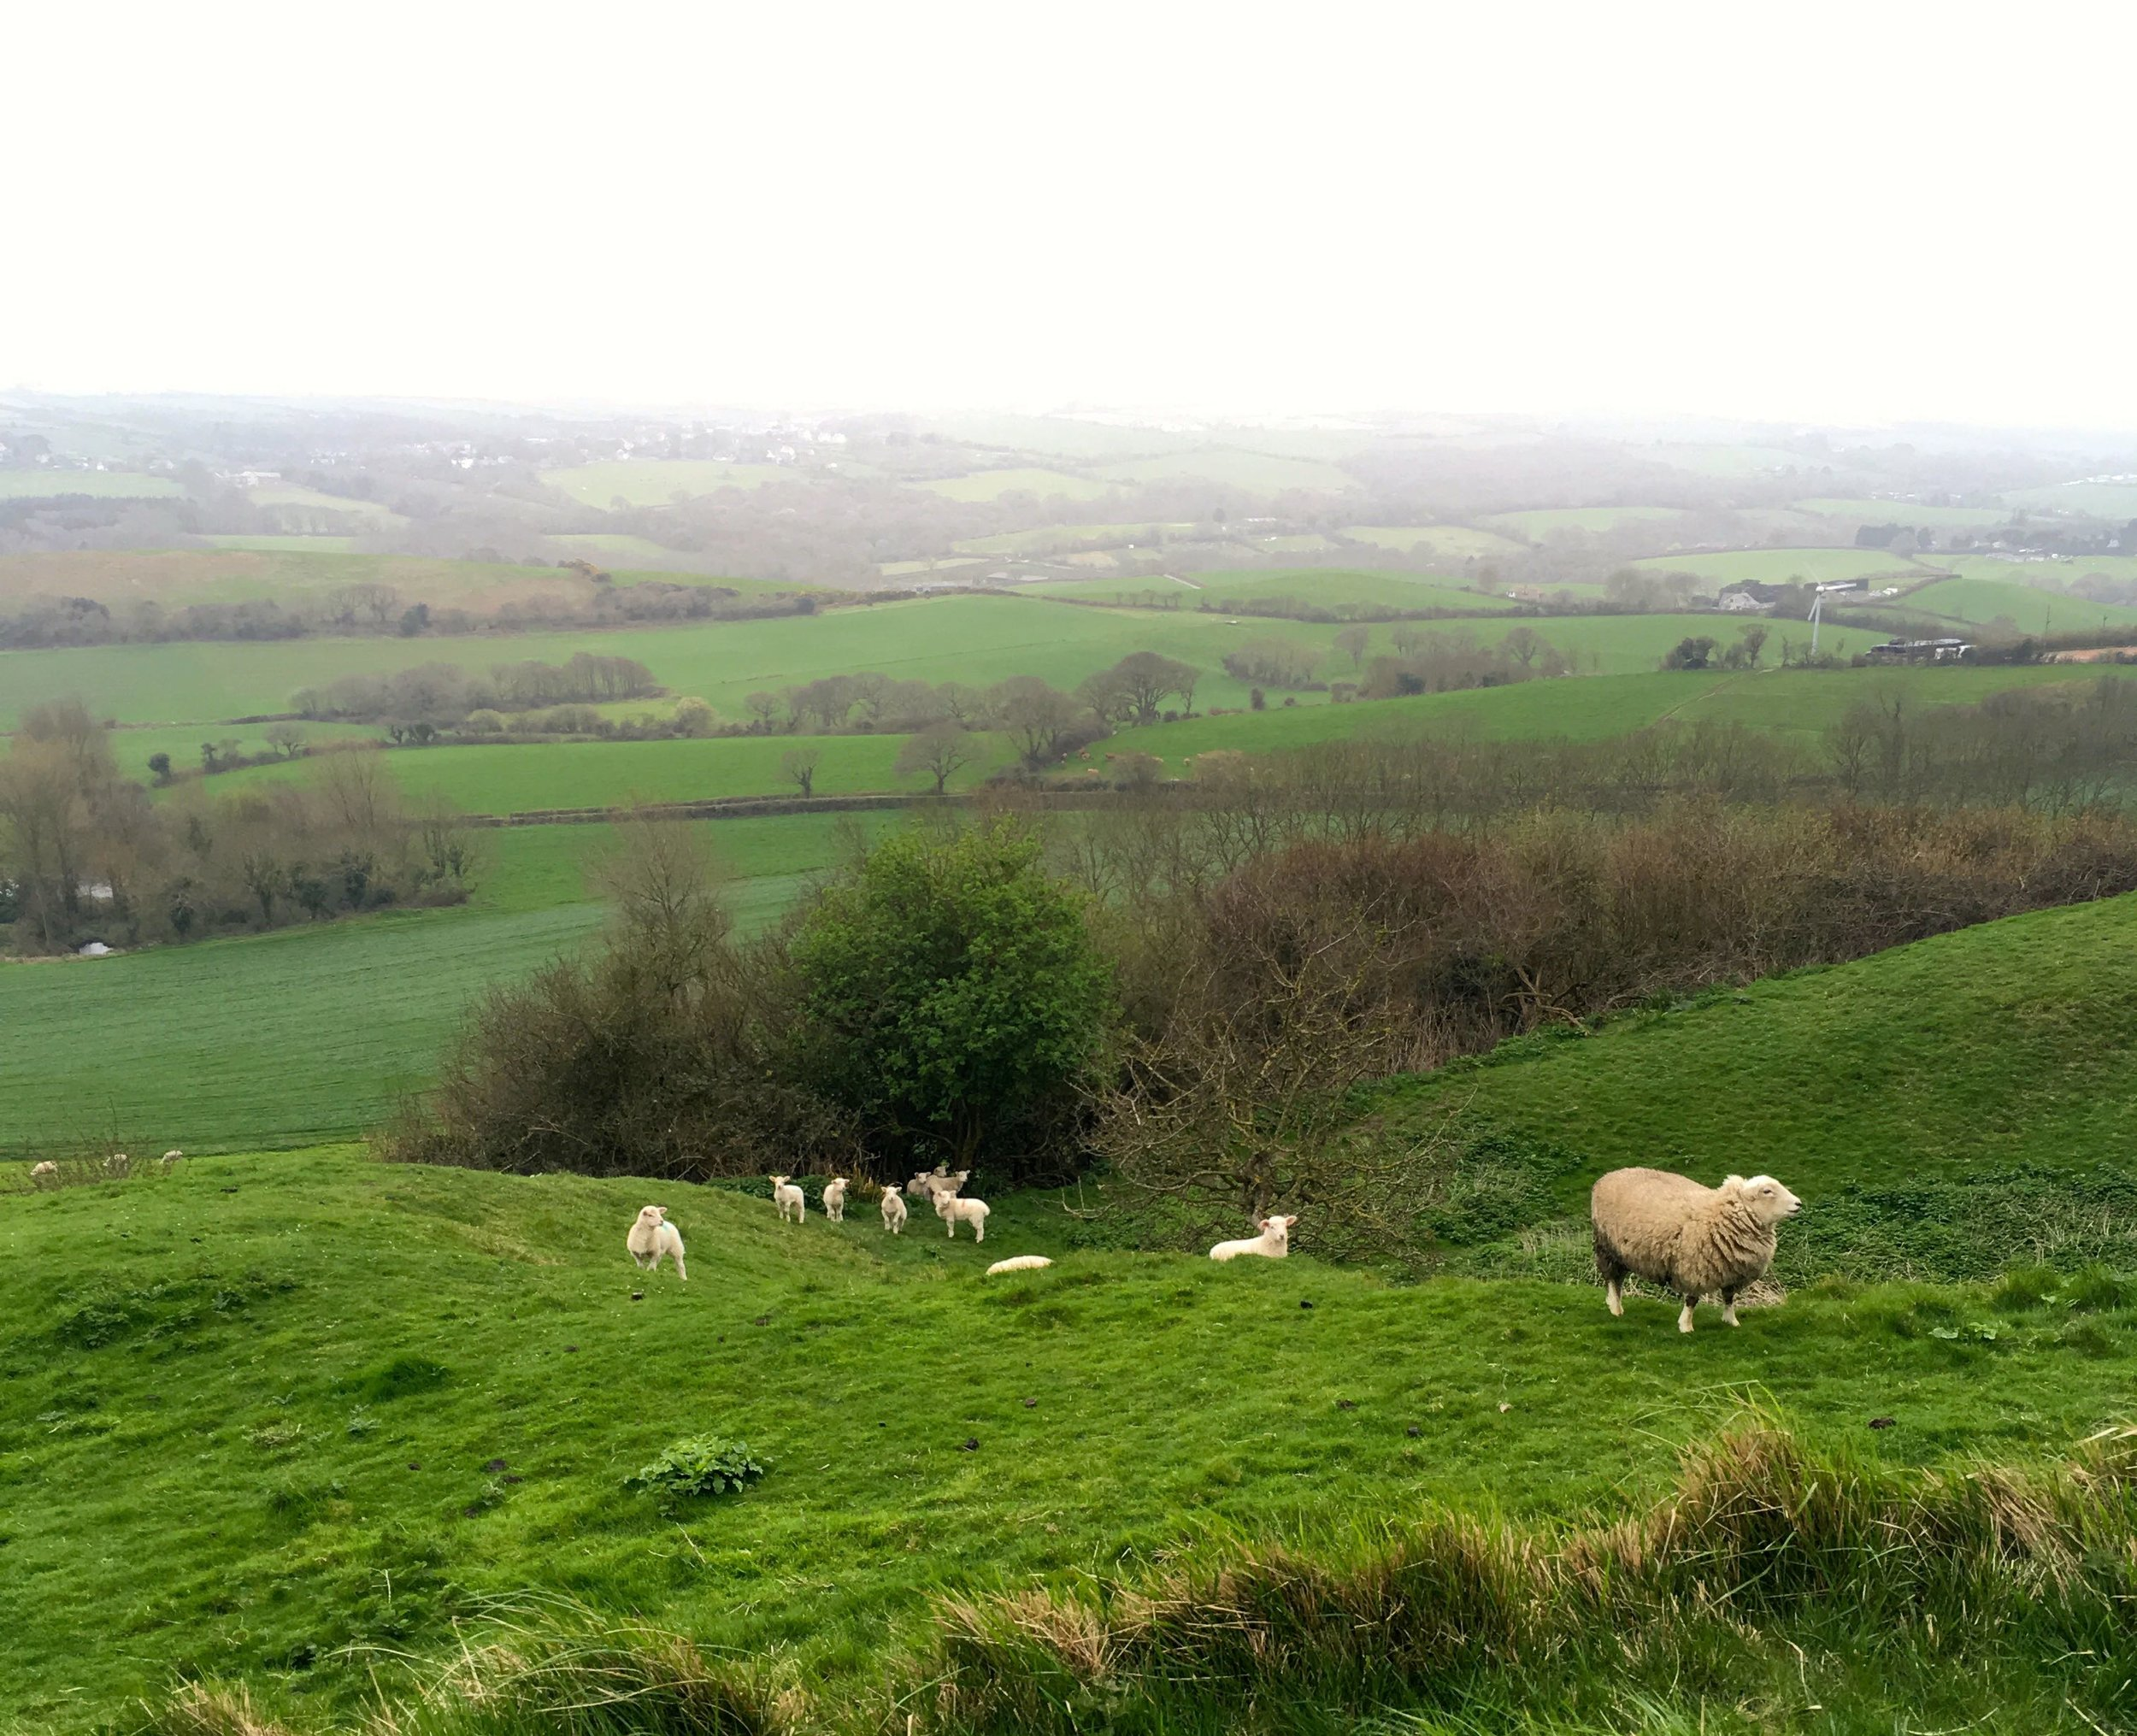 looking inland across the fields and trying not to disturb the sheep with their lambs